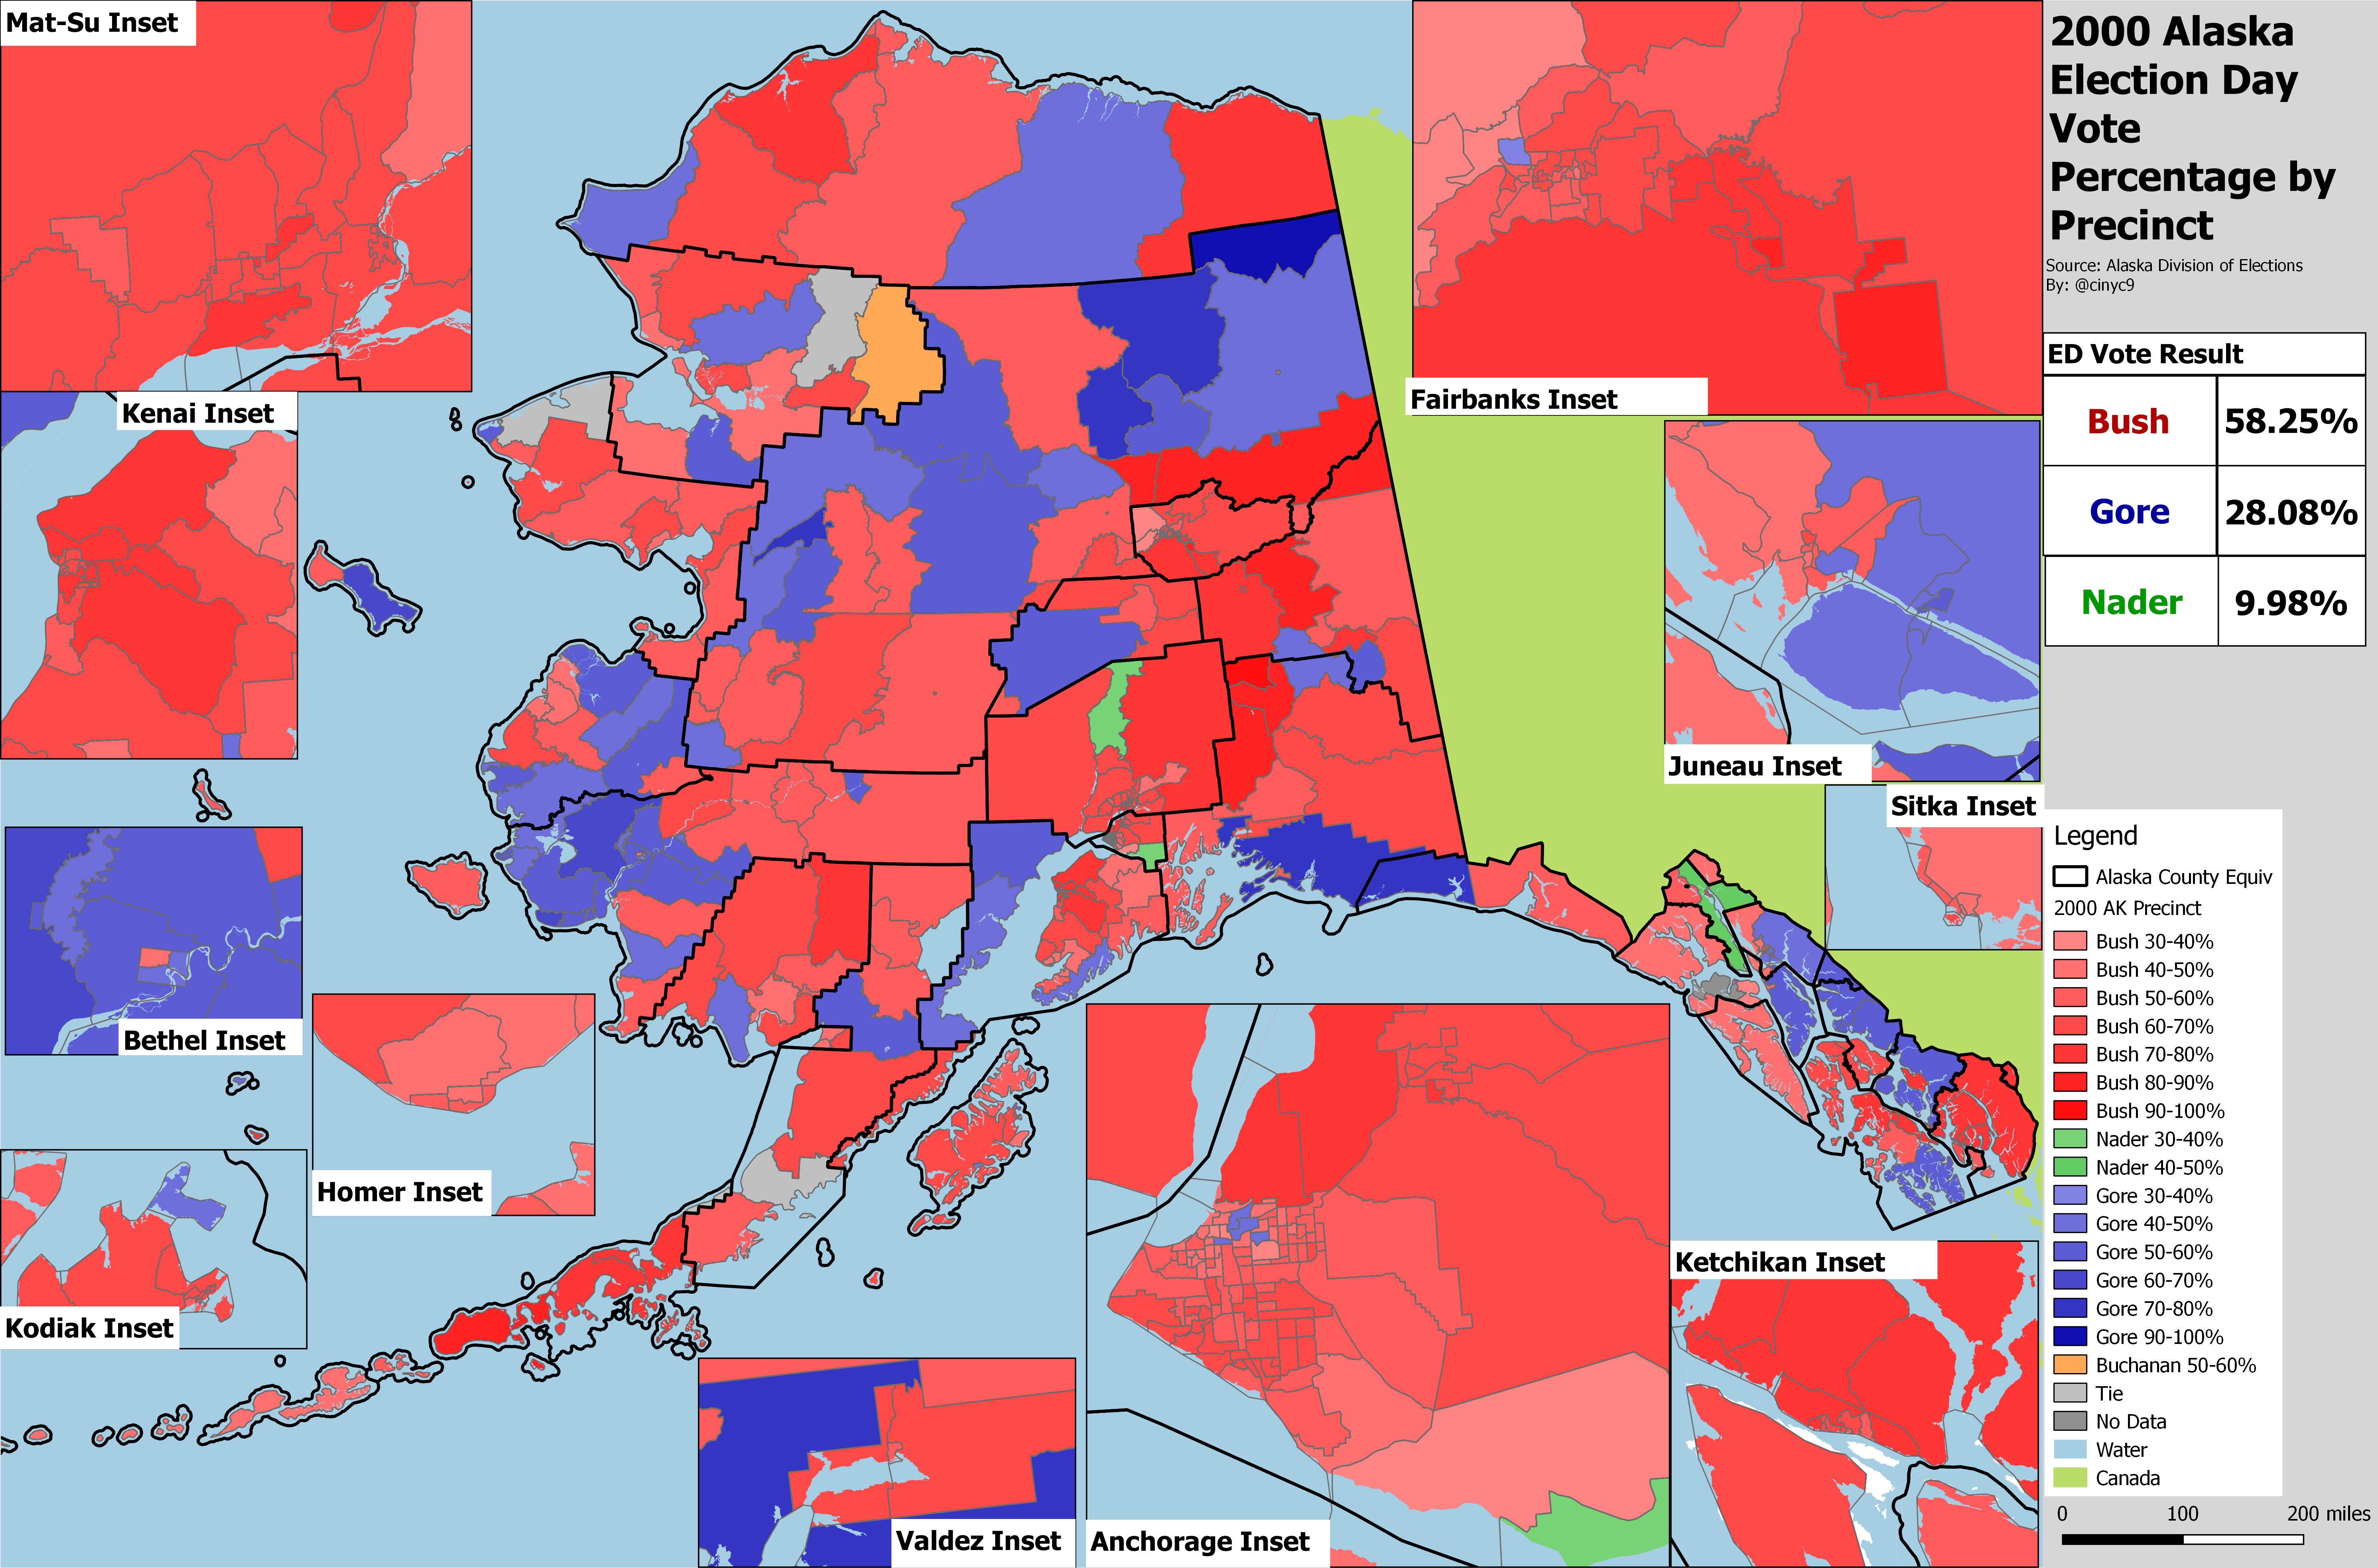 Alaska Results by County Equivalent, 1960-2016 – RRH Elections on florida map, united states presidential election, 1944, pole shift map, 2012 electoral map, 2000 presidential map, democratic party, medicare map, united states presidential election, 1988, electoral college, united states presidential election, 1992, political campaign map, united states presidential election, 1960, united states presidential election, 1948, united states presidential election, 1984, presidential vote map, british rule map, global warming map, anschluss map, hate crimes map, united states presidential election, 1964, nasa map, united states presidential election, 1976, 1700's map, united states presidential election, 1980, united states presidential election, 2004, obama 2008 map, united states presidential election, 2008, asia pacific region map, 1916 electoral map, medieval period map, katherine harris, dust storm map, republican party, united states presidential election, 1972, ralph nader, united states presidential election, 1996, hillary clinton 2016 electoral map, 2000 census map, bush v. gore,